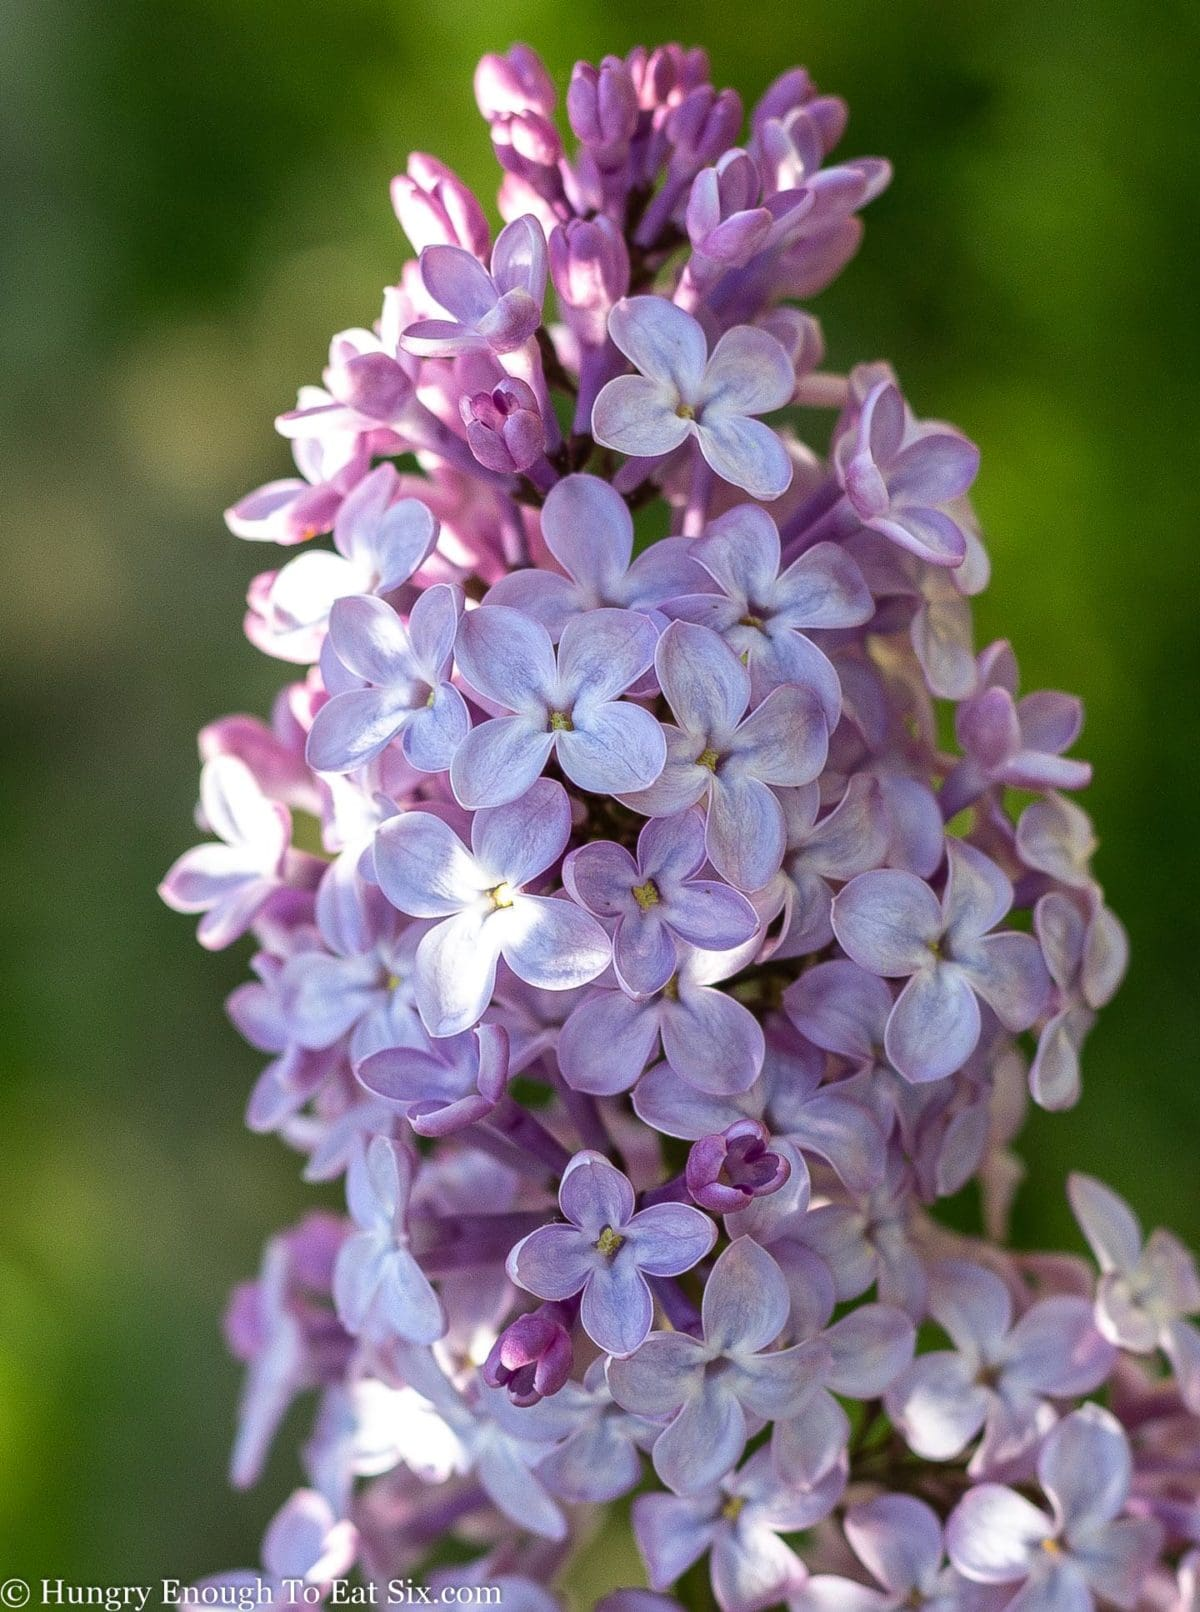 Cluster of light purple lilac blooms on the branch.